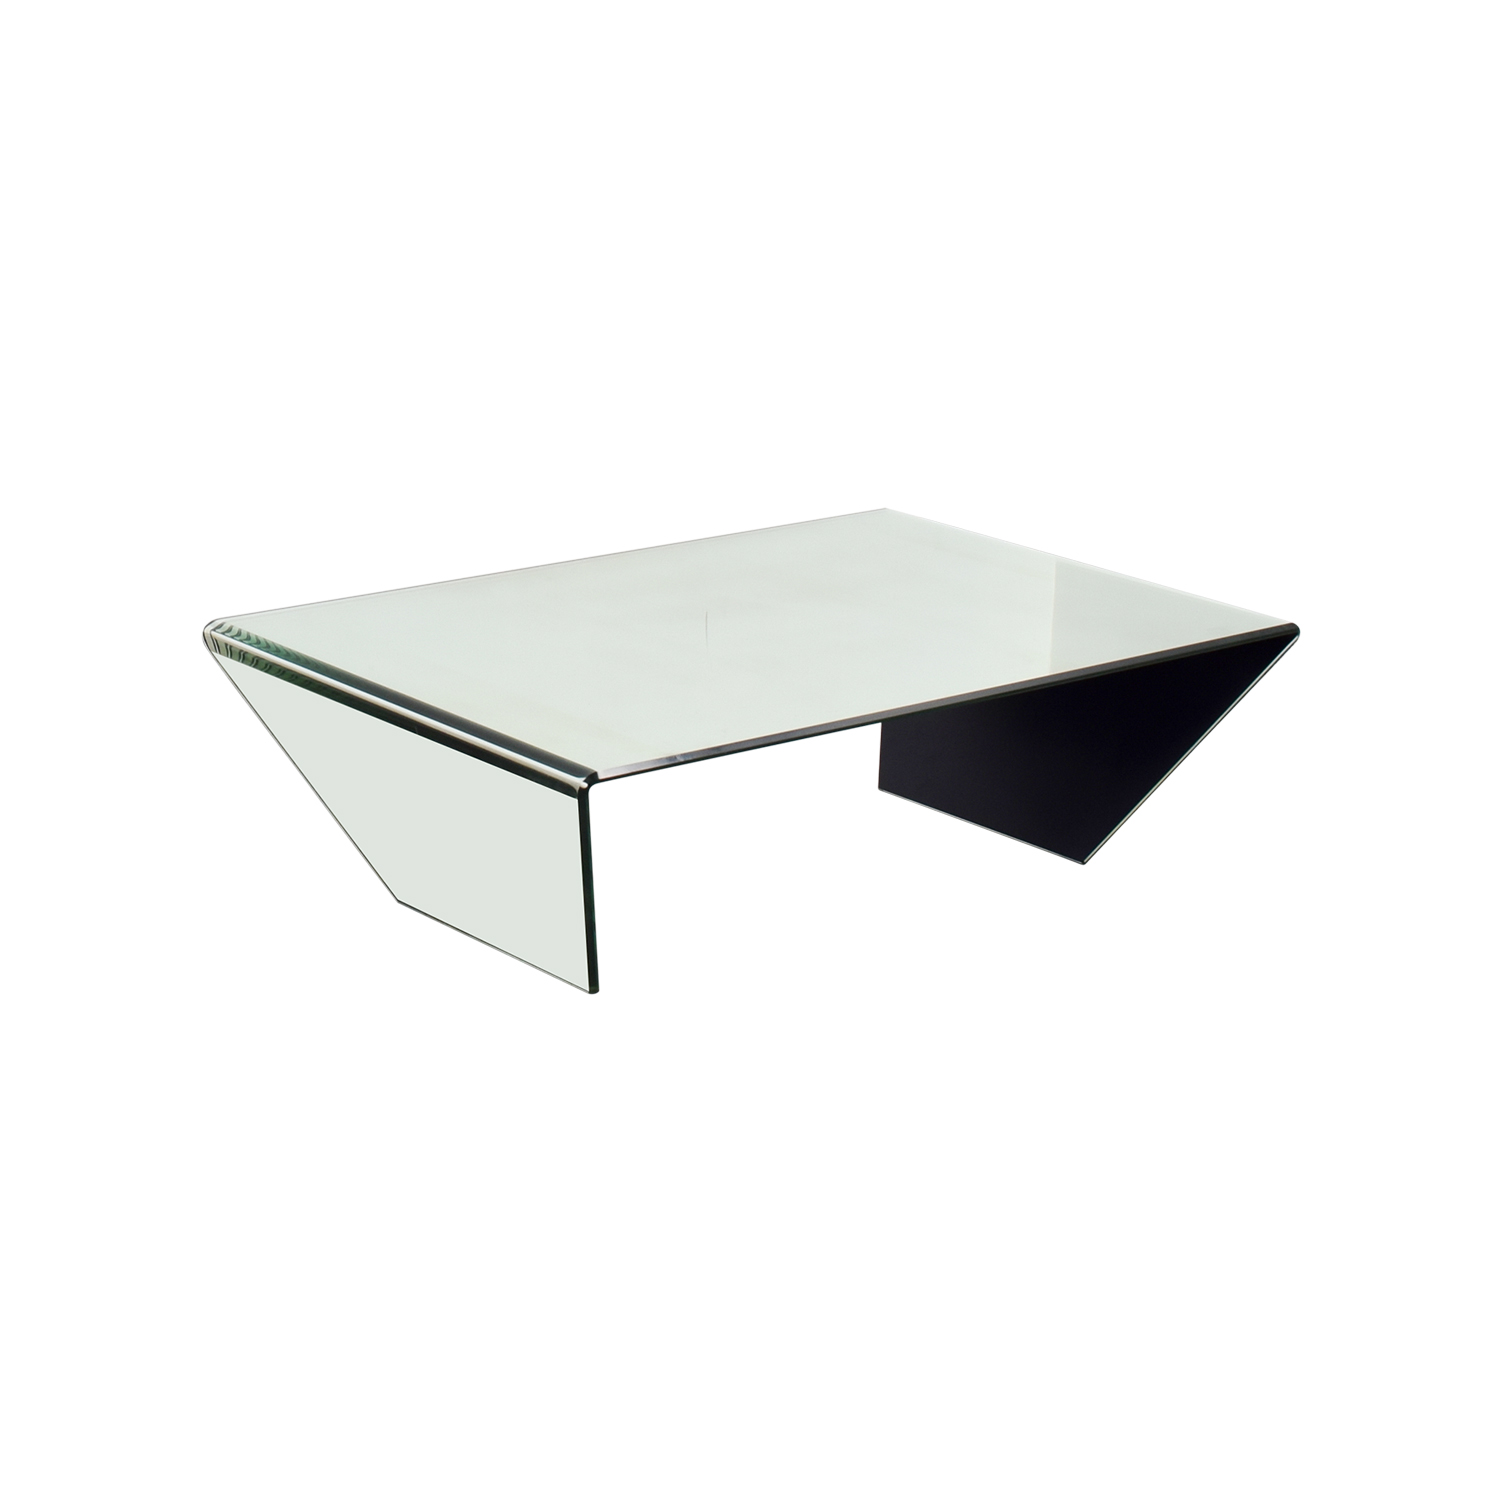 J & M Furniture J & M Furniture Bent Mirrired Glass Coffee Table price